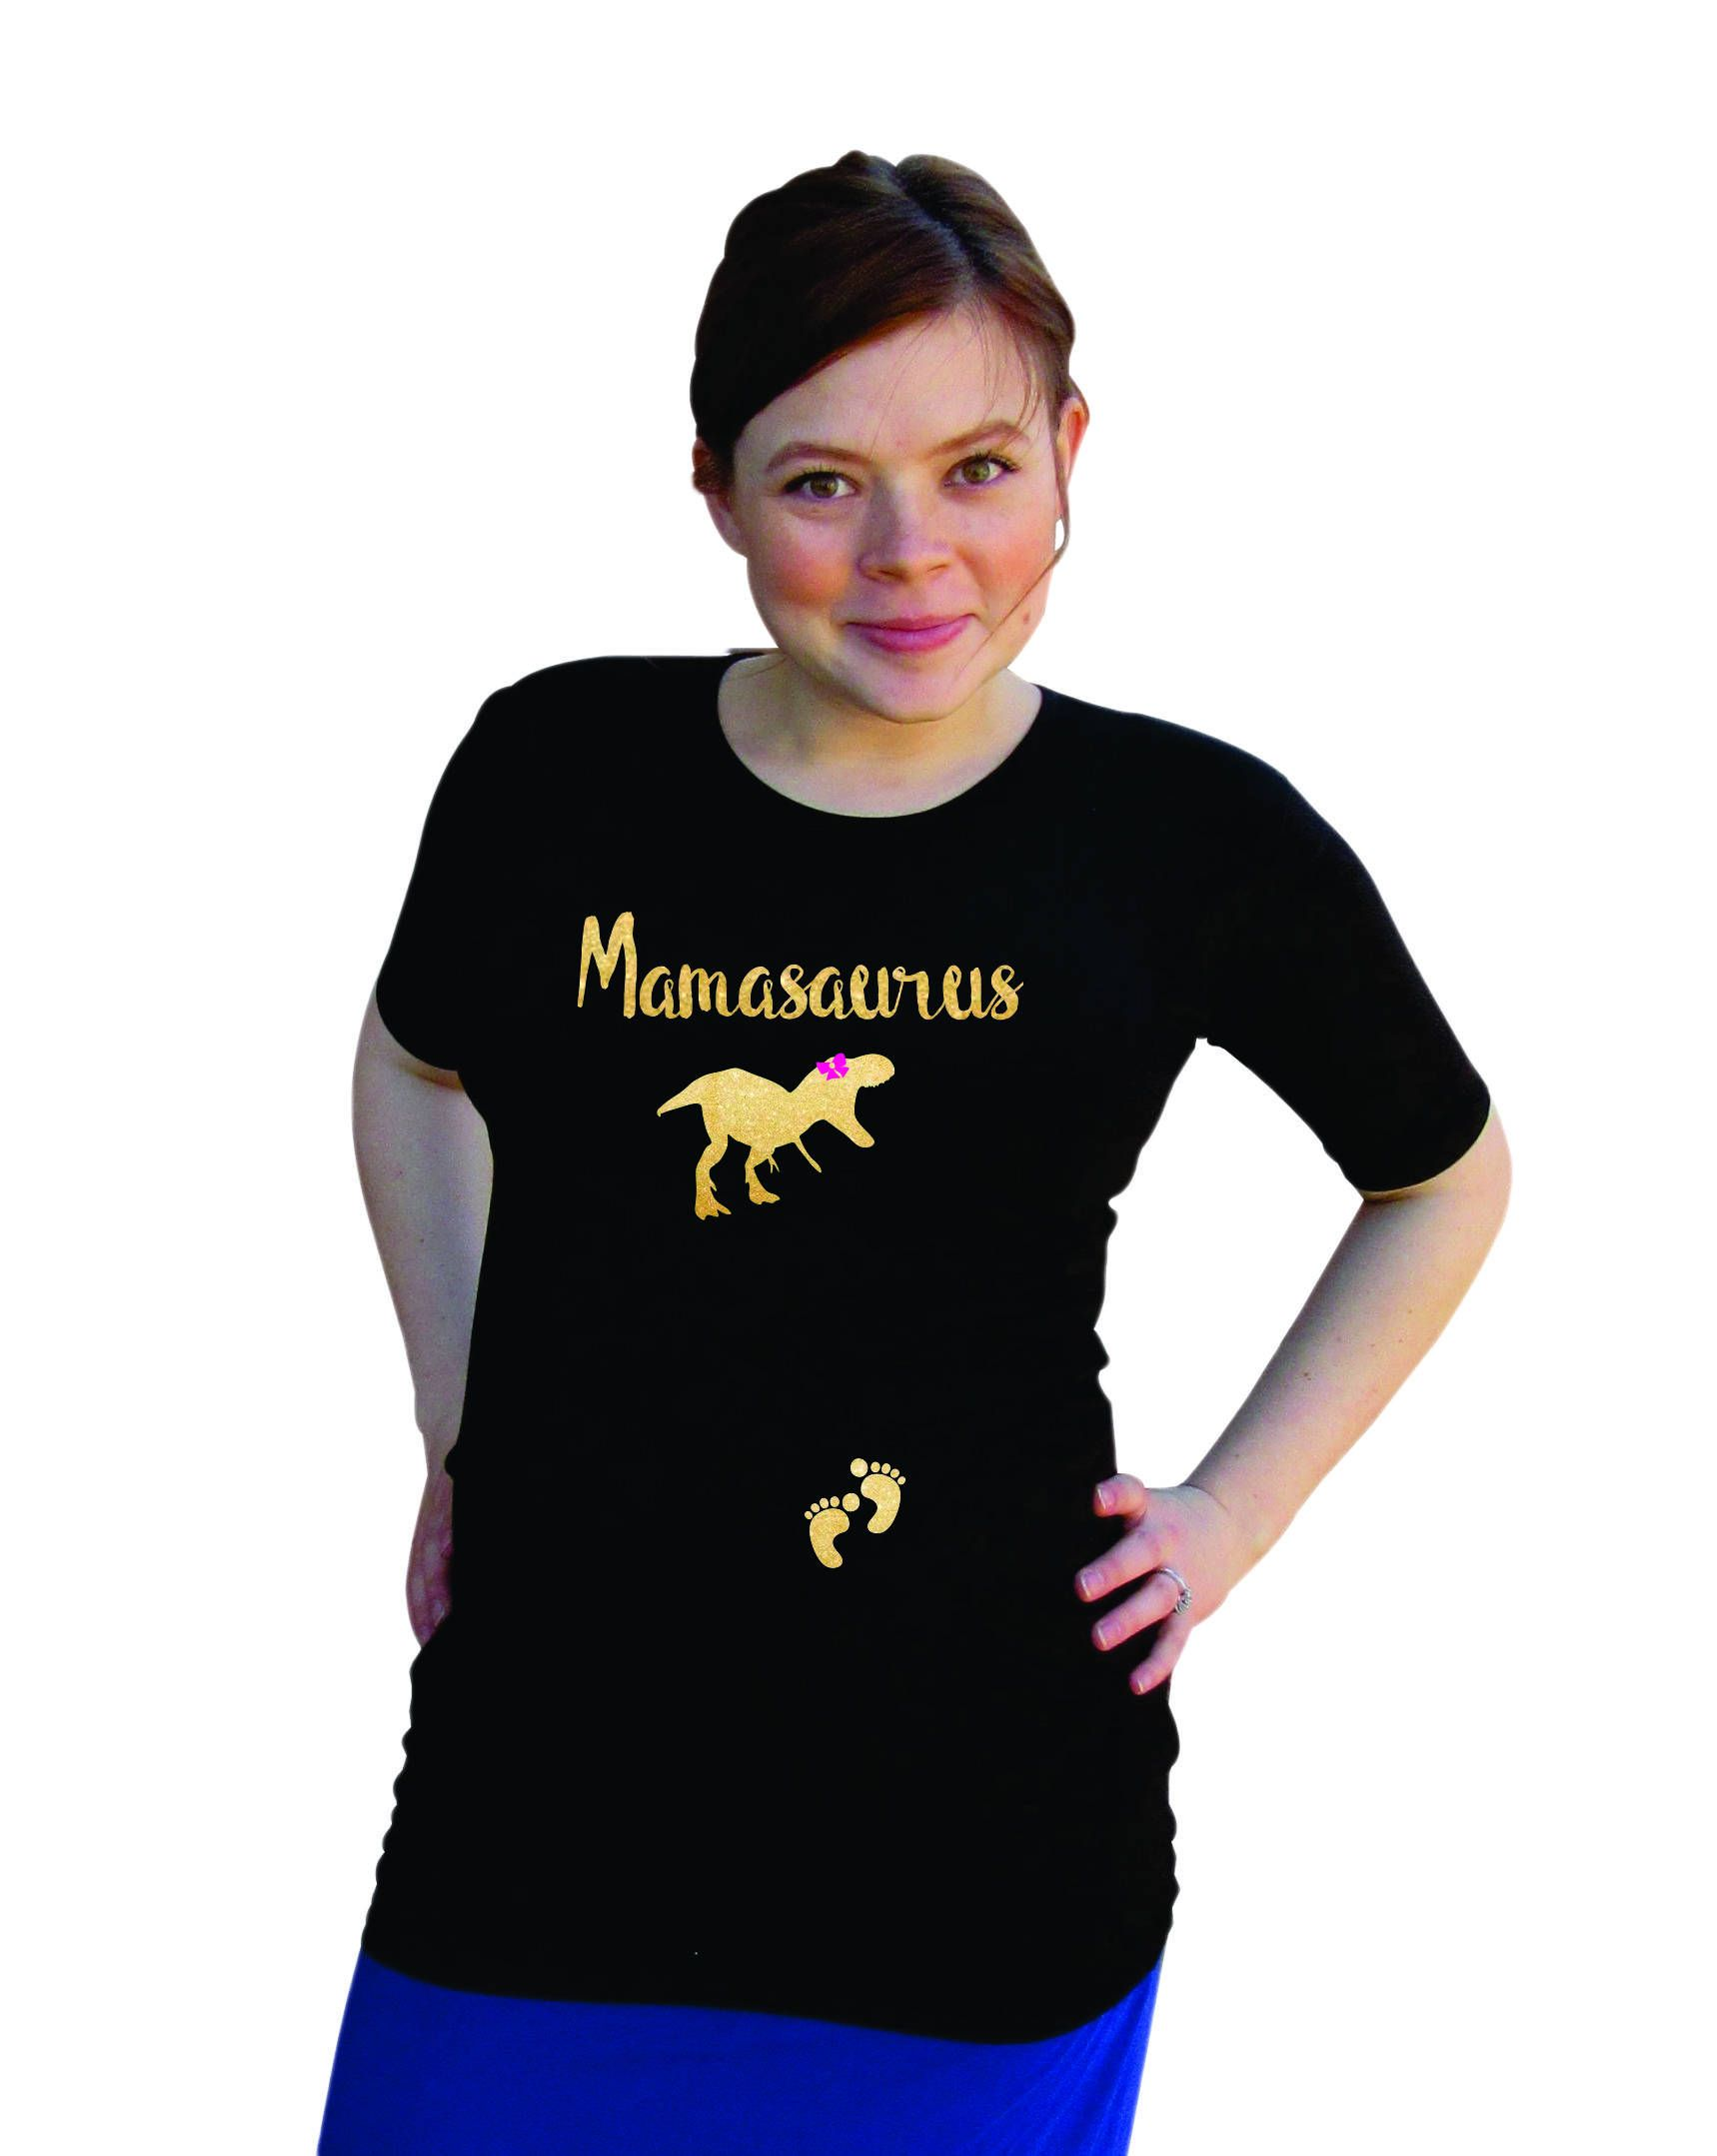 4914b1ad4 Mamasaurus Maternity - pregnancy shirt- plus size maternity available-  Pregnancy announcement shirt- Black by DJammarMaternity on Etsy